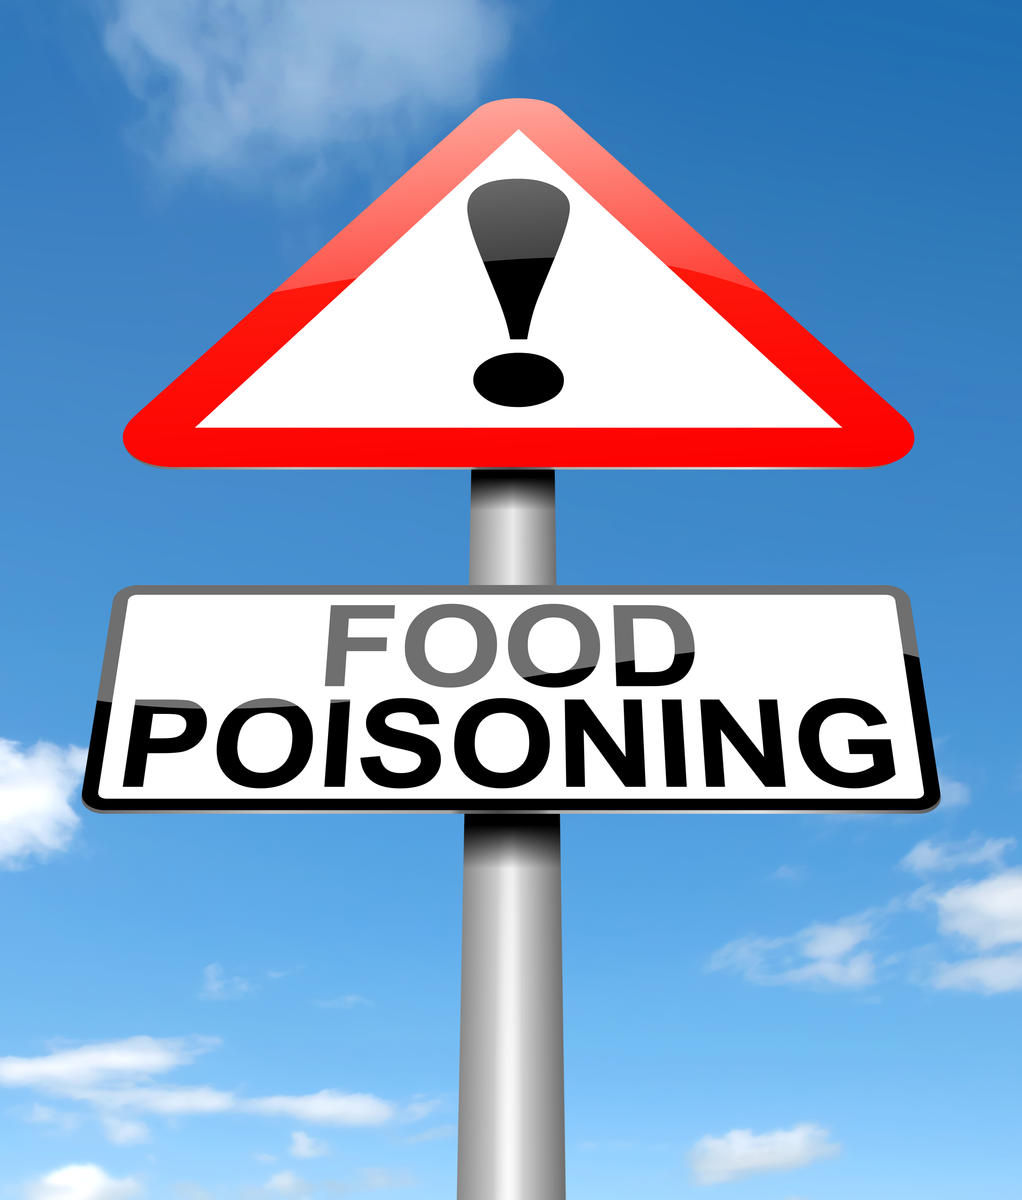 Food Poisoning for Everyone